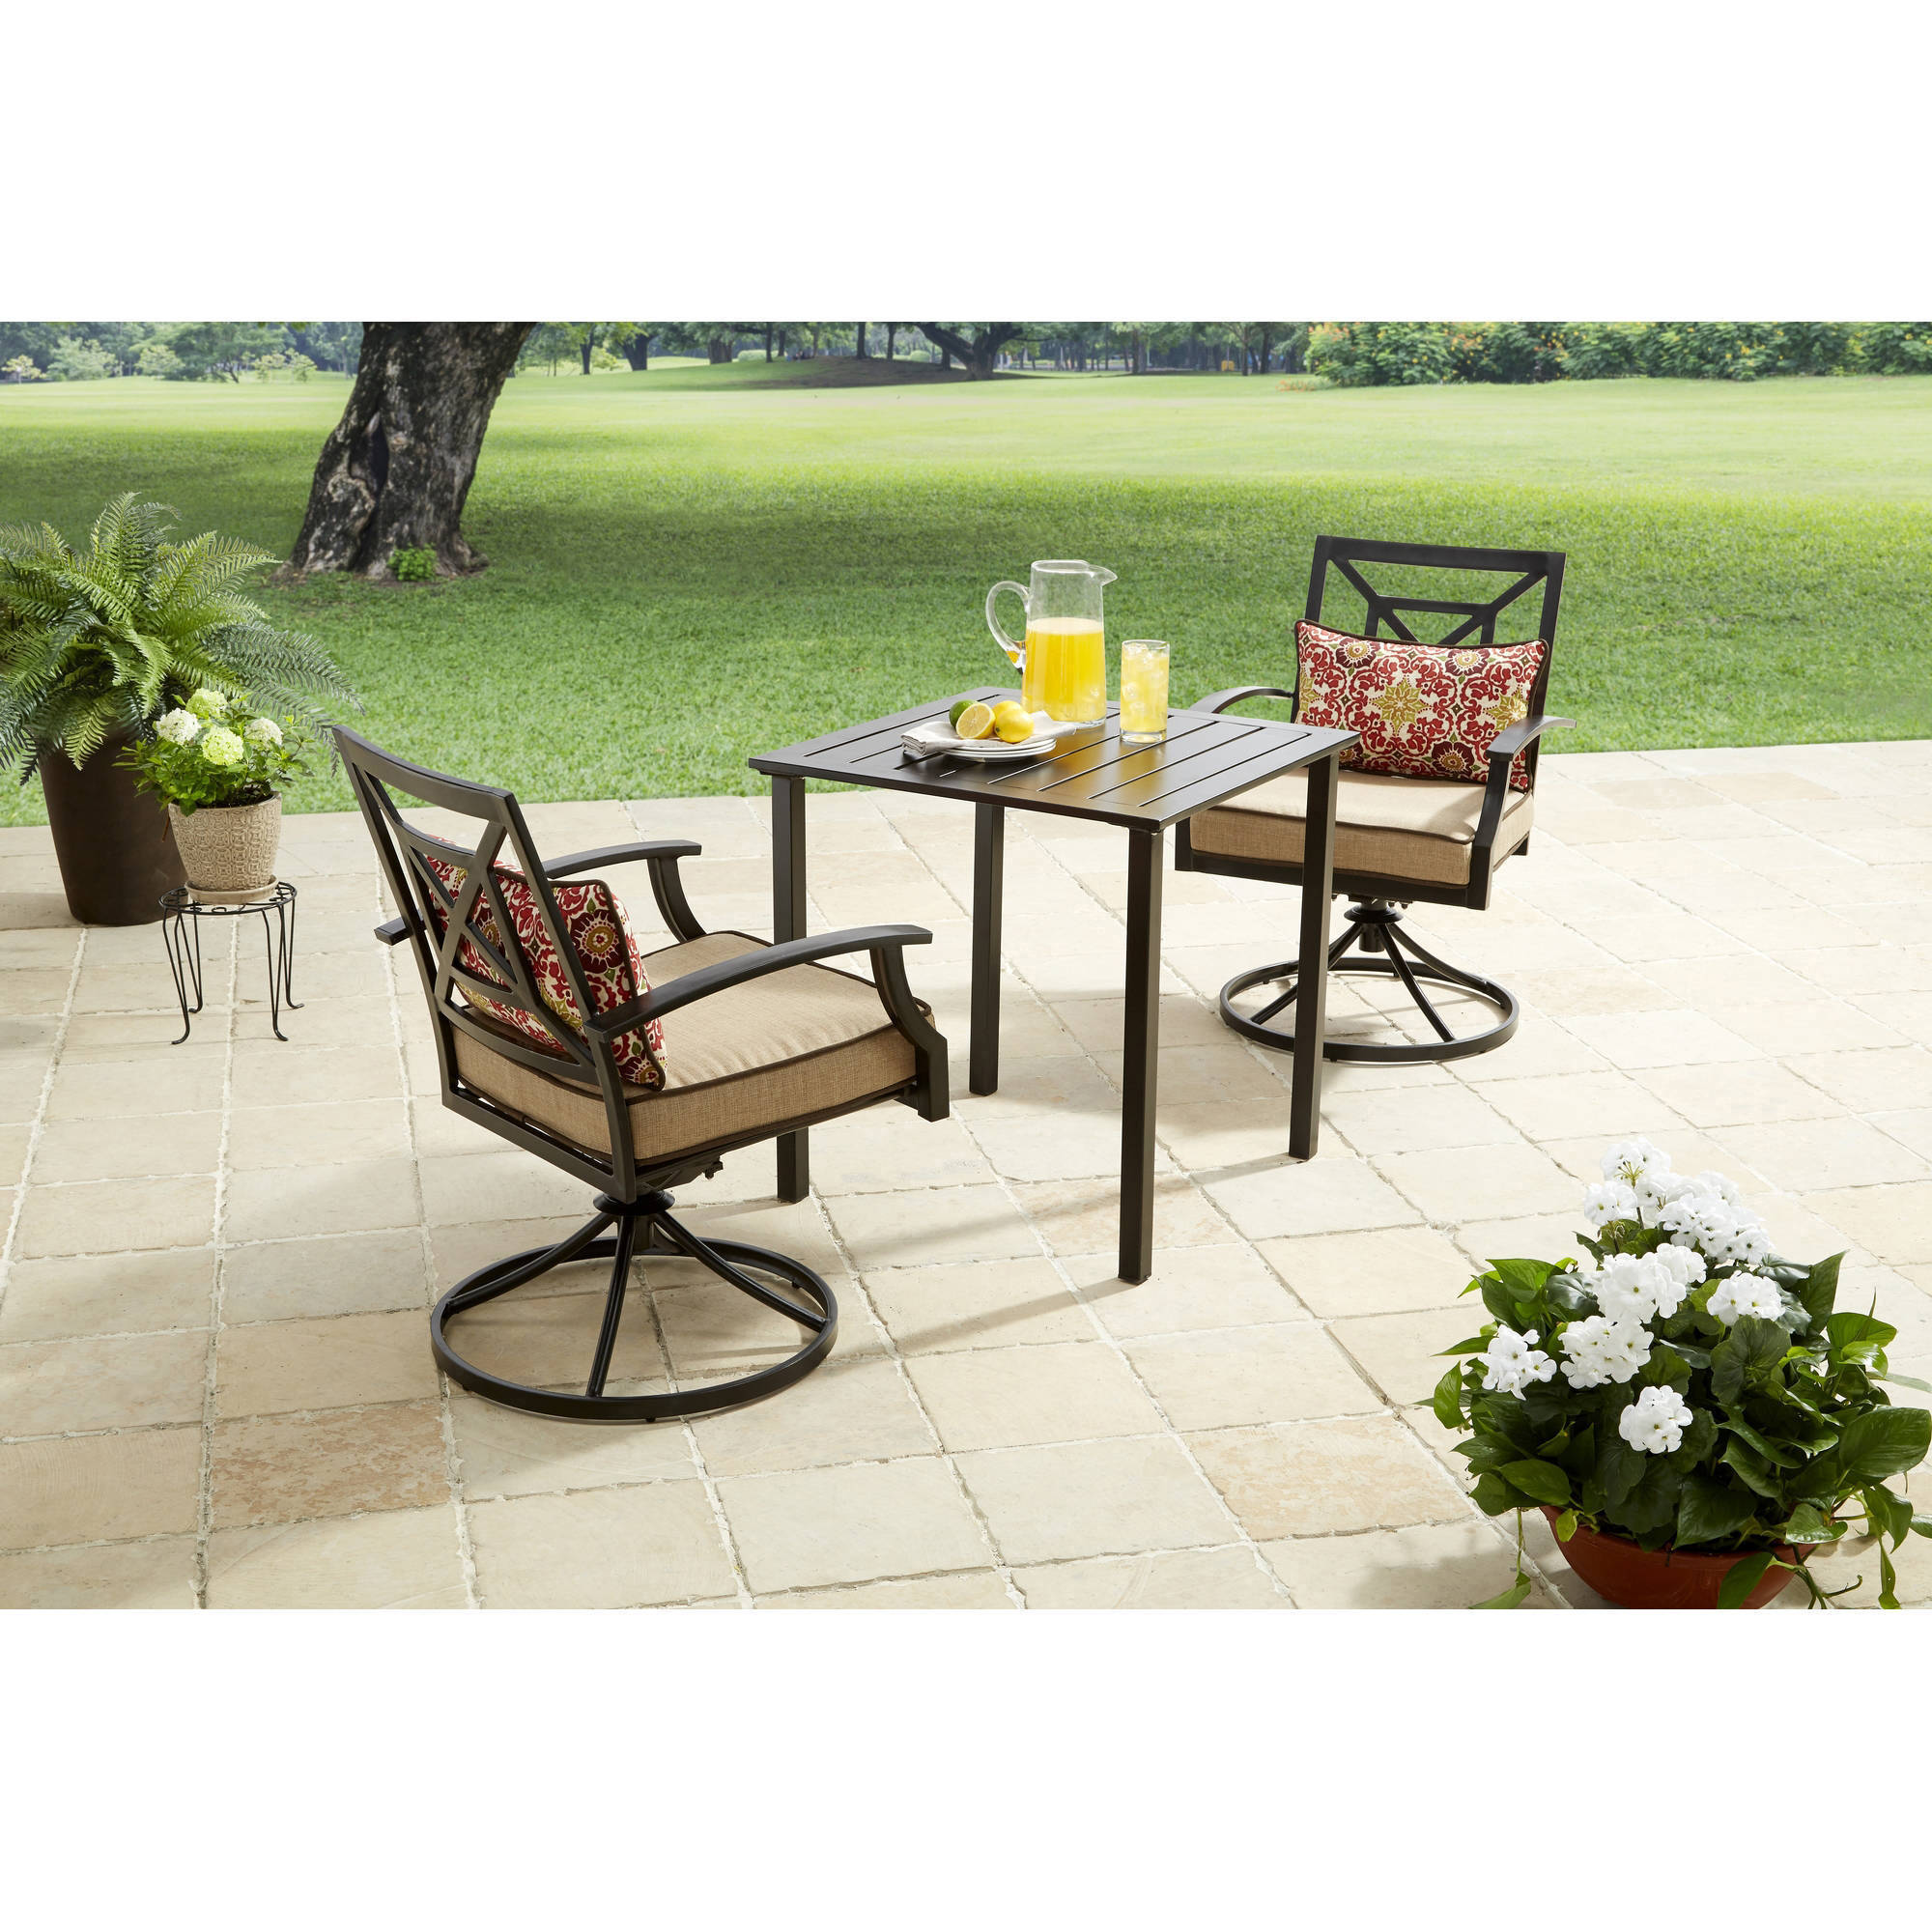 3 piece patio set better homes and gardens 3 outdoor 10318